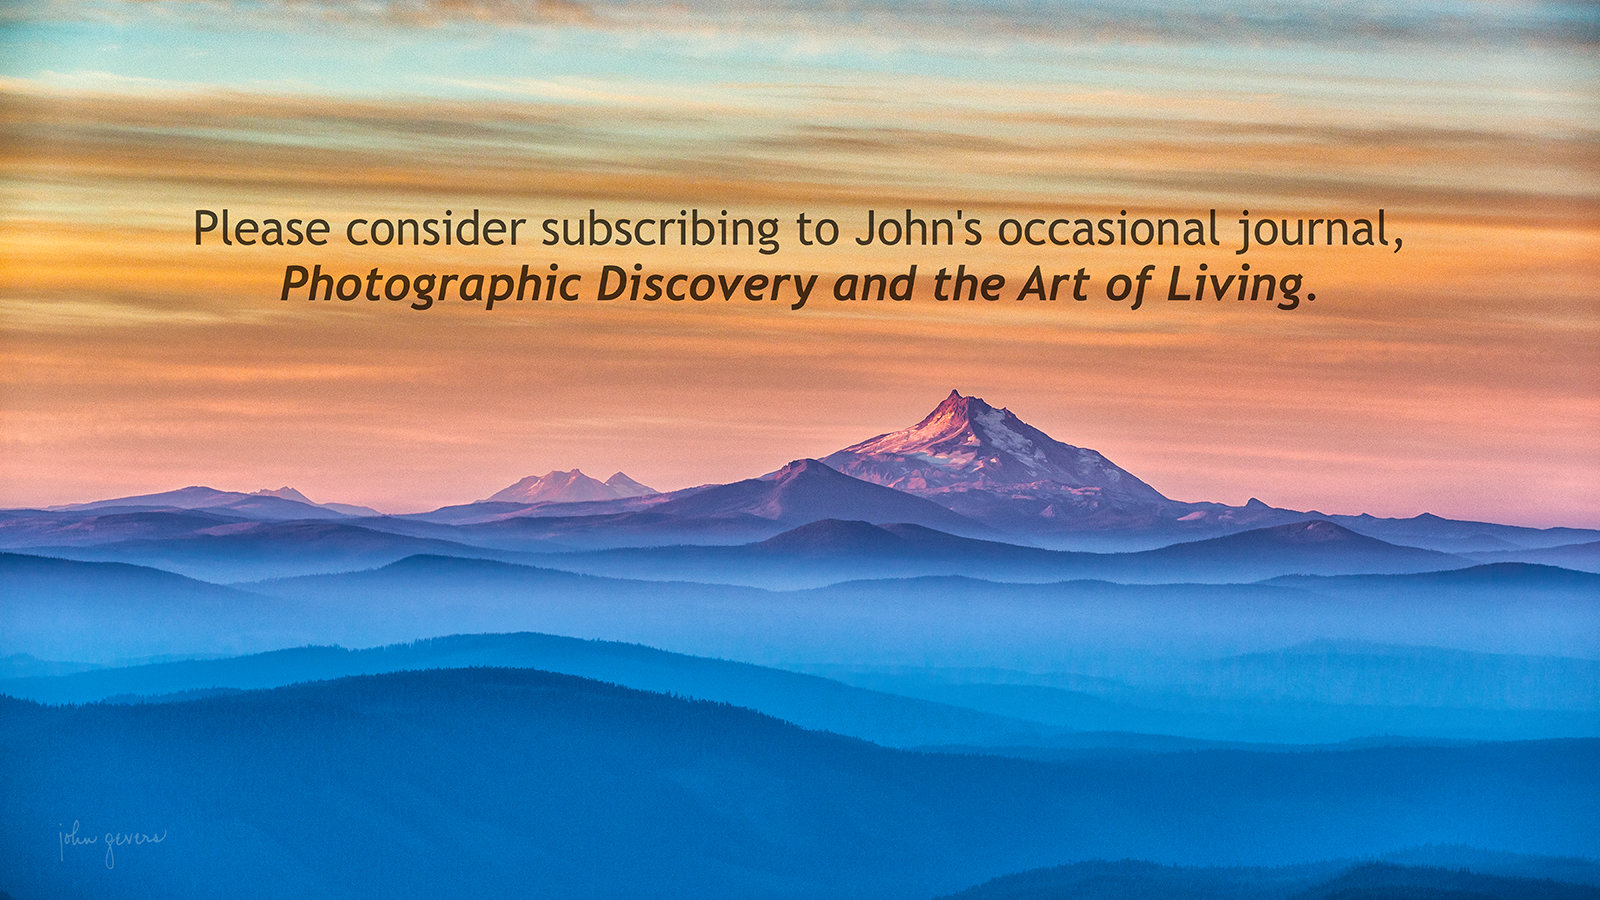 Please consider subscribing to John's occasional journal, Photographic Discovery and the Art of Living.